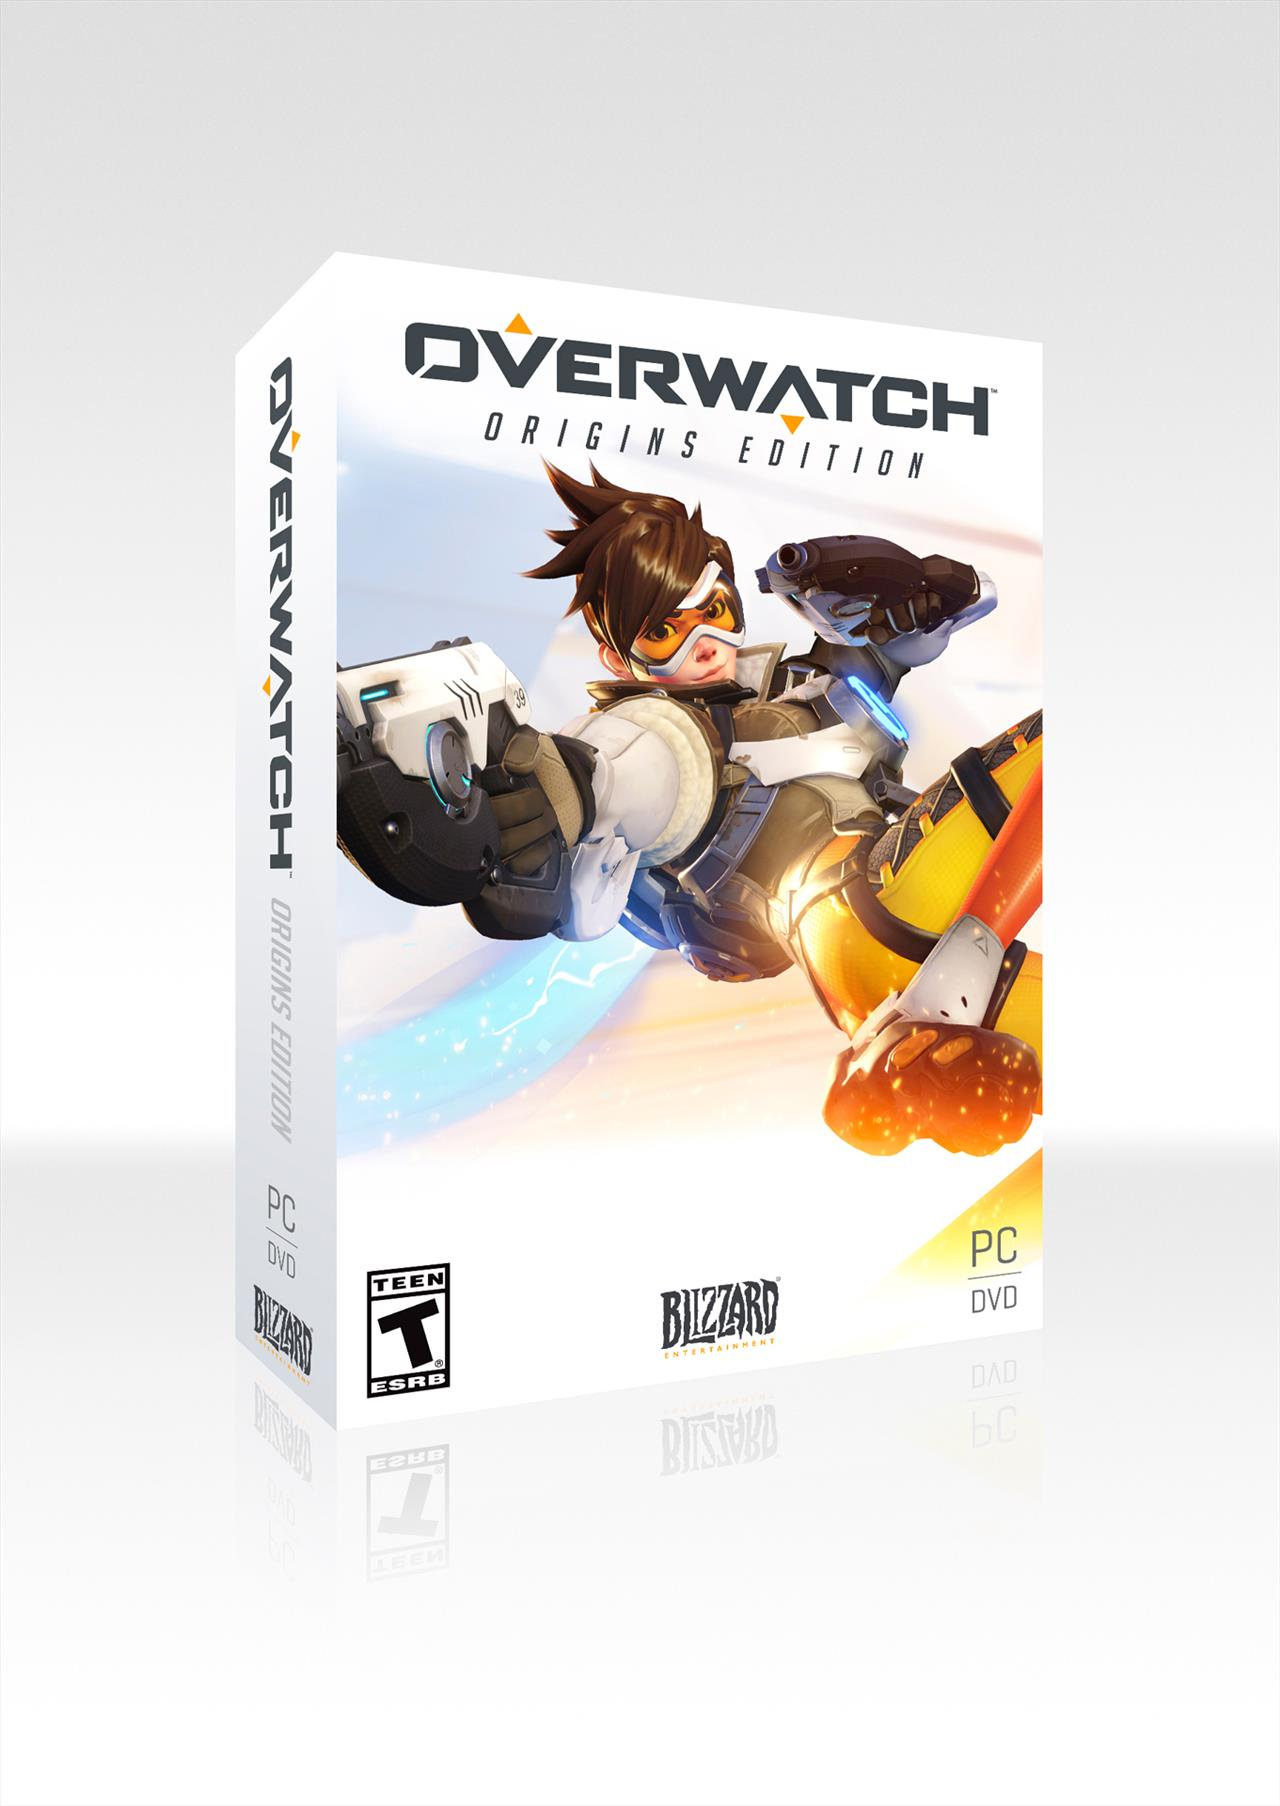 overwatch launching spring 2016 on pc and consoles